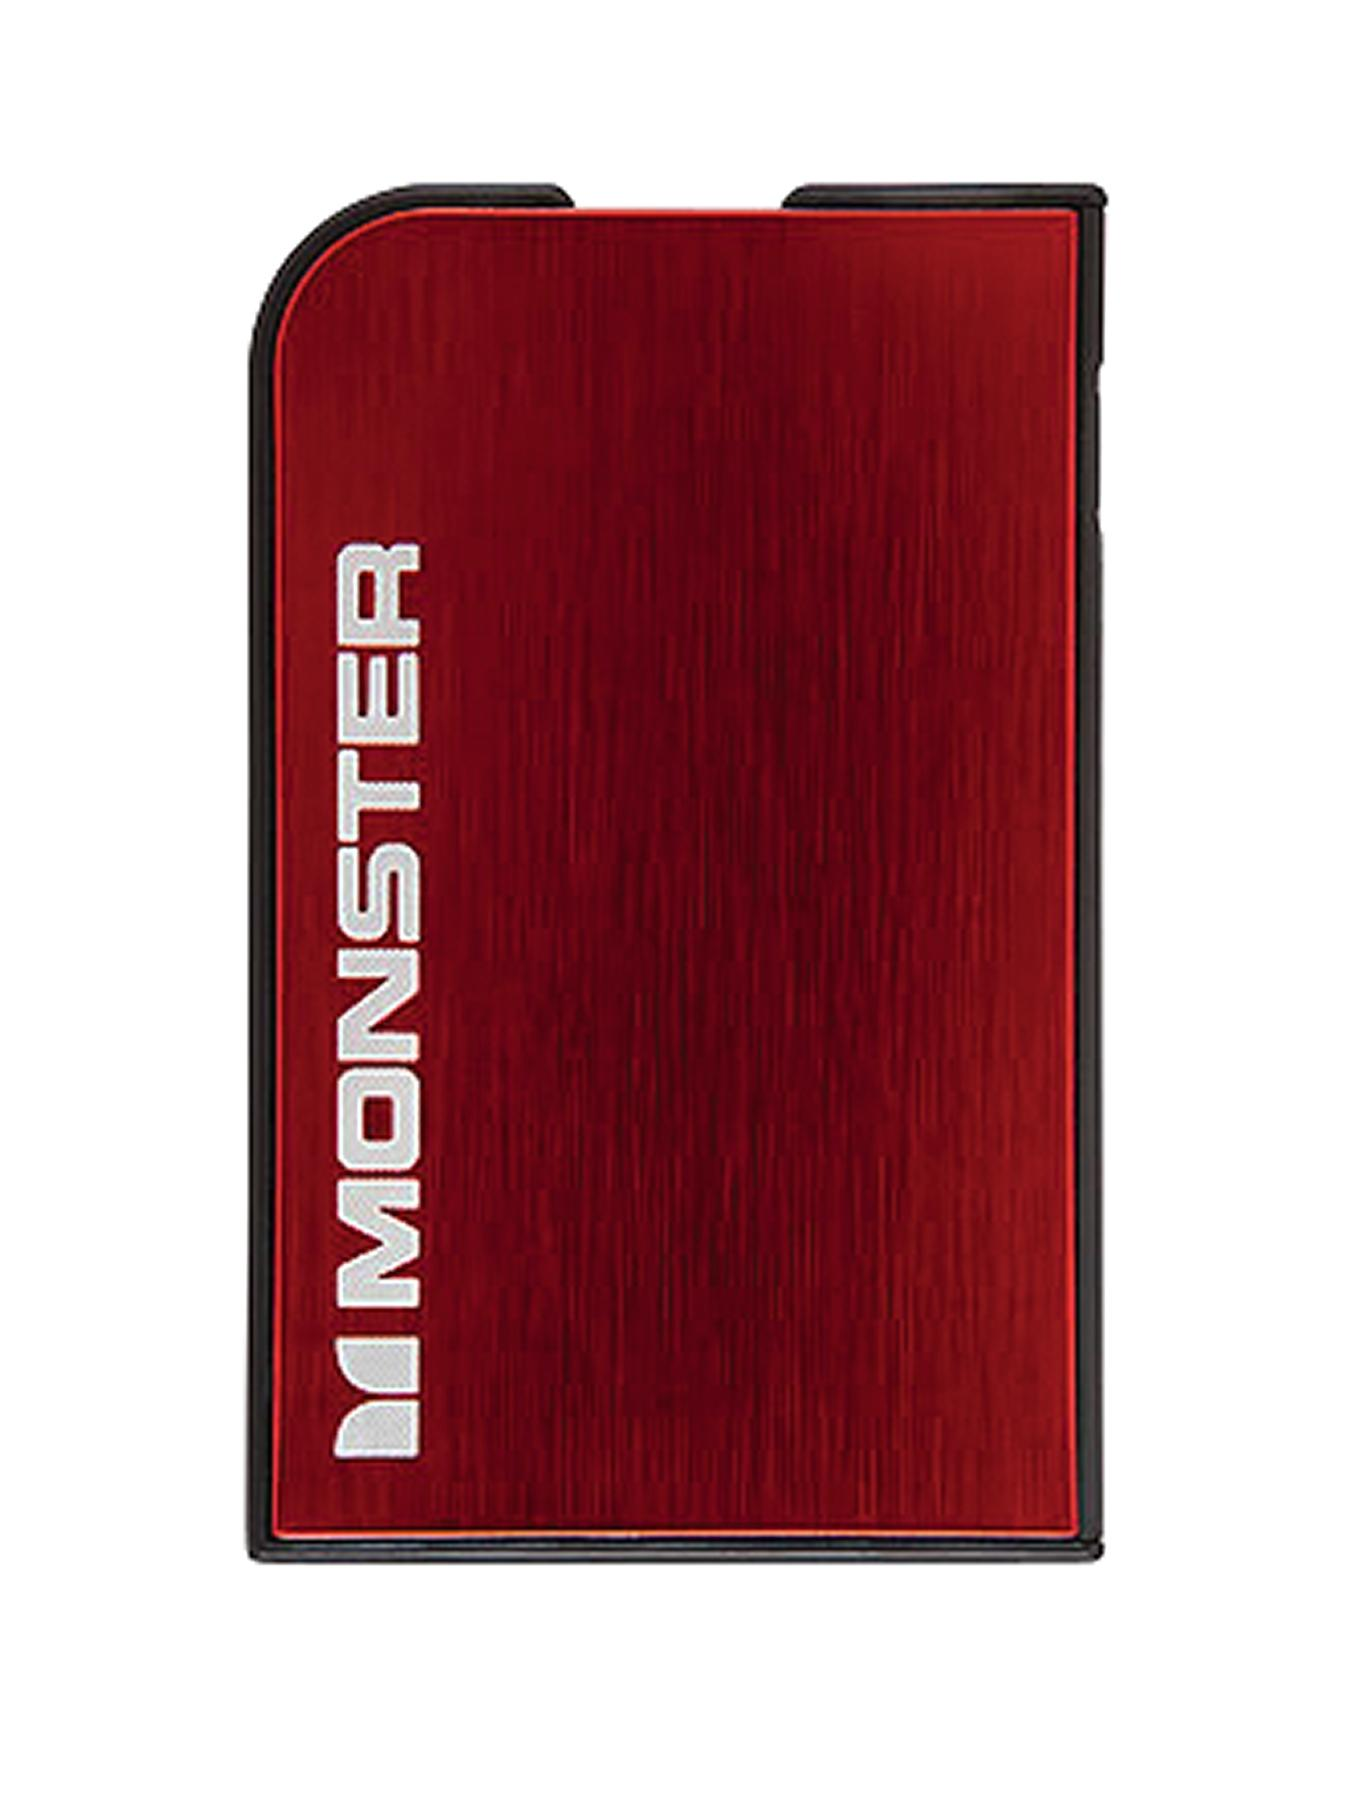 Monster Charging Mobile PowerCard Portable Battery - Silver, Silver